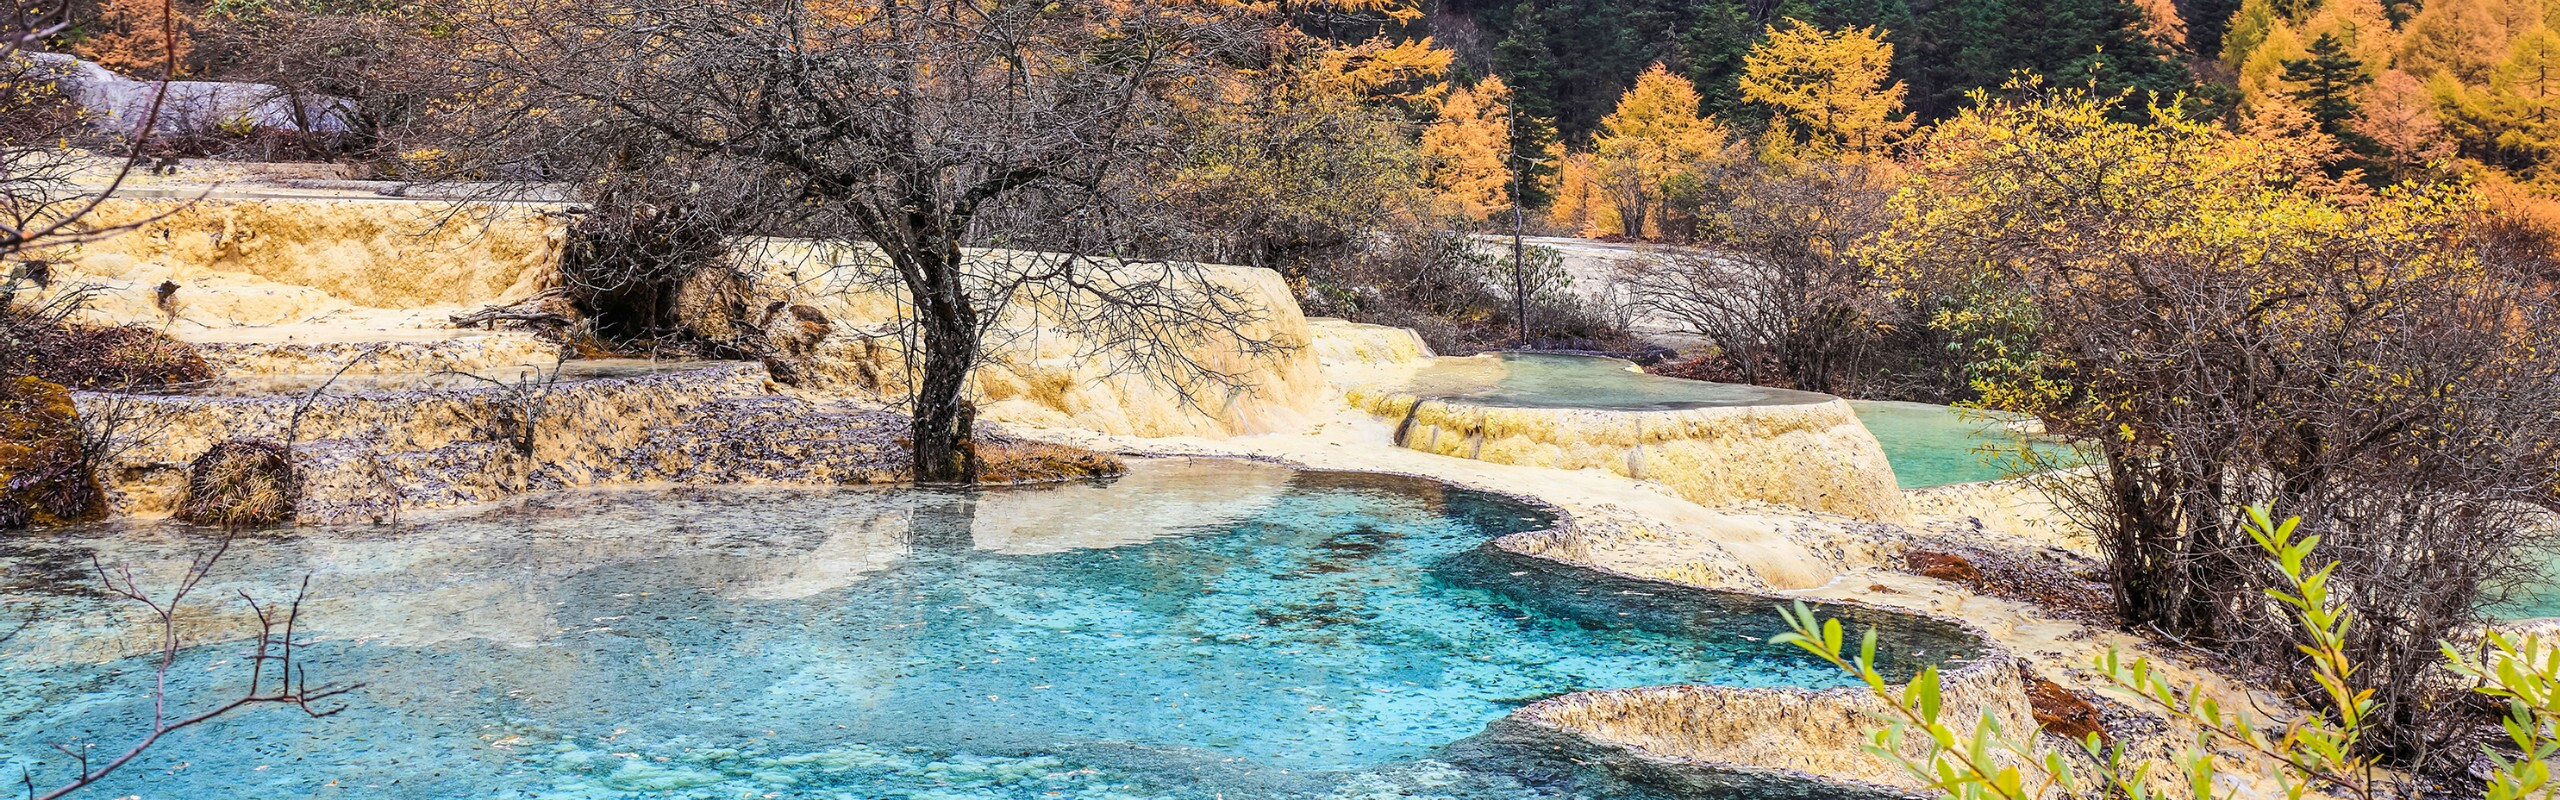 Peak Season Deal for Jiuzhaigou and Huanglong